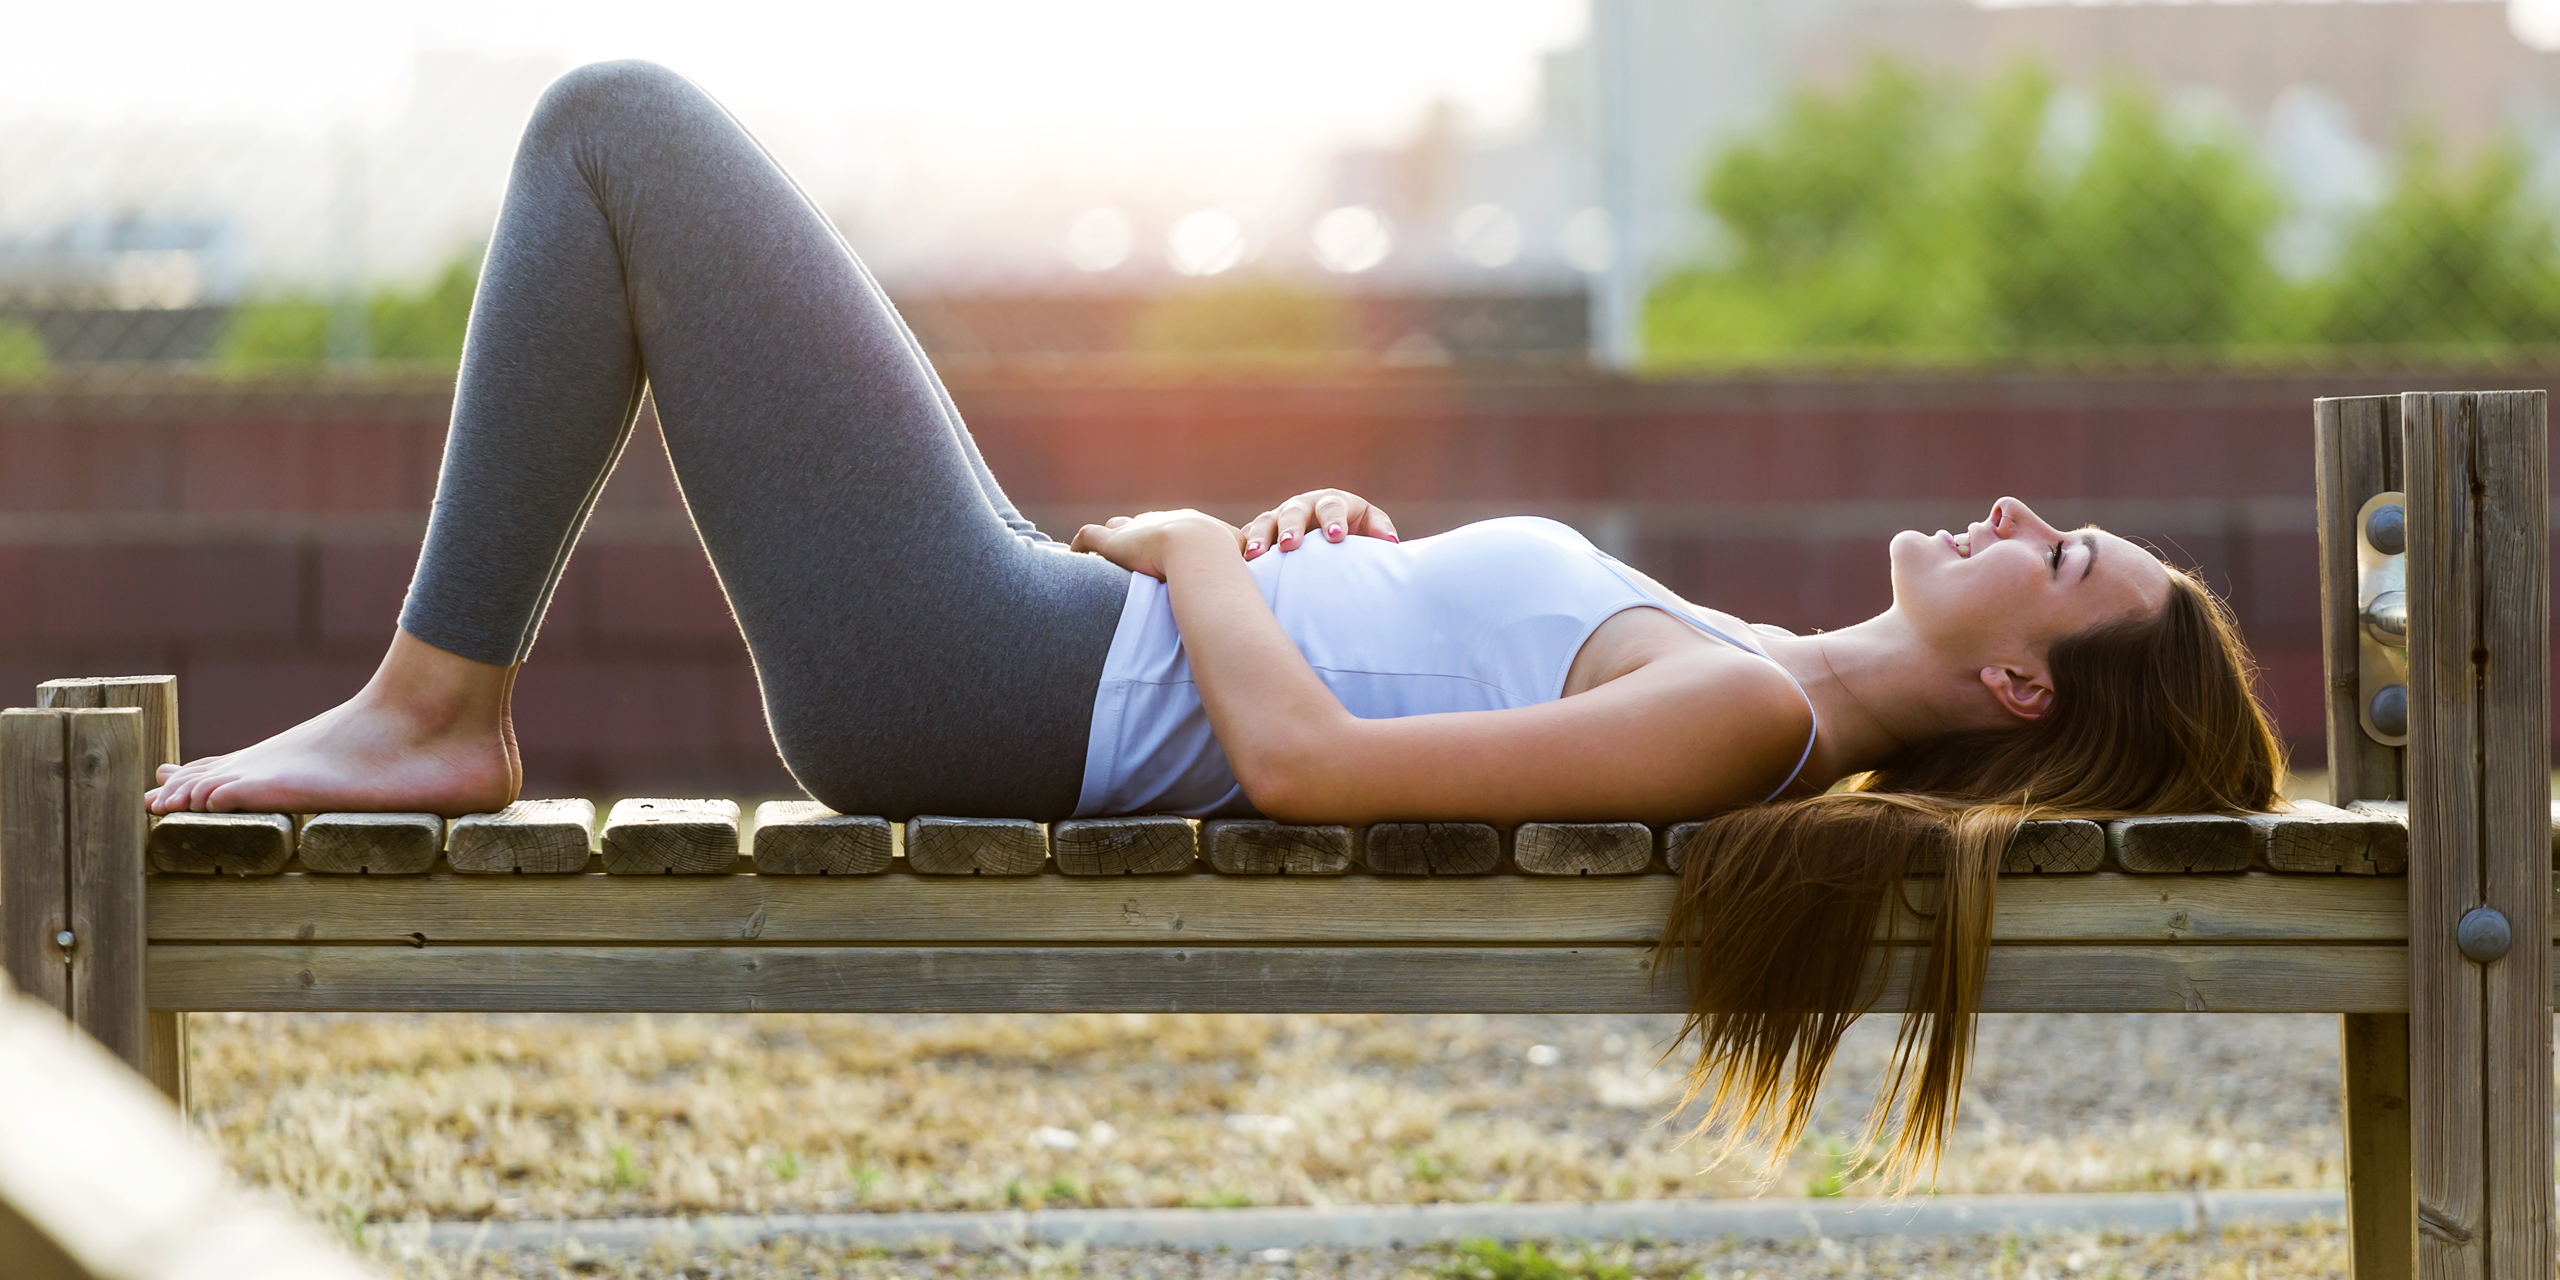 How To Do Progressive Muscle Relaxation To Fall Asleep